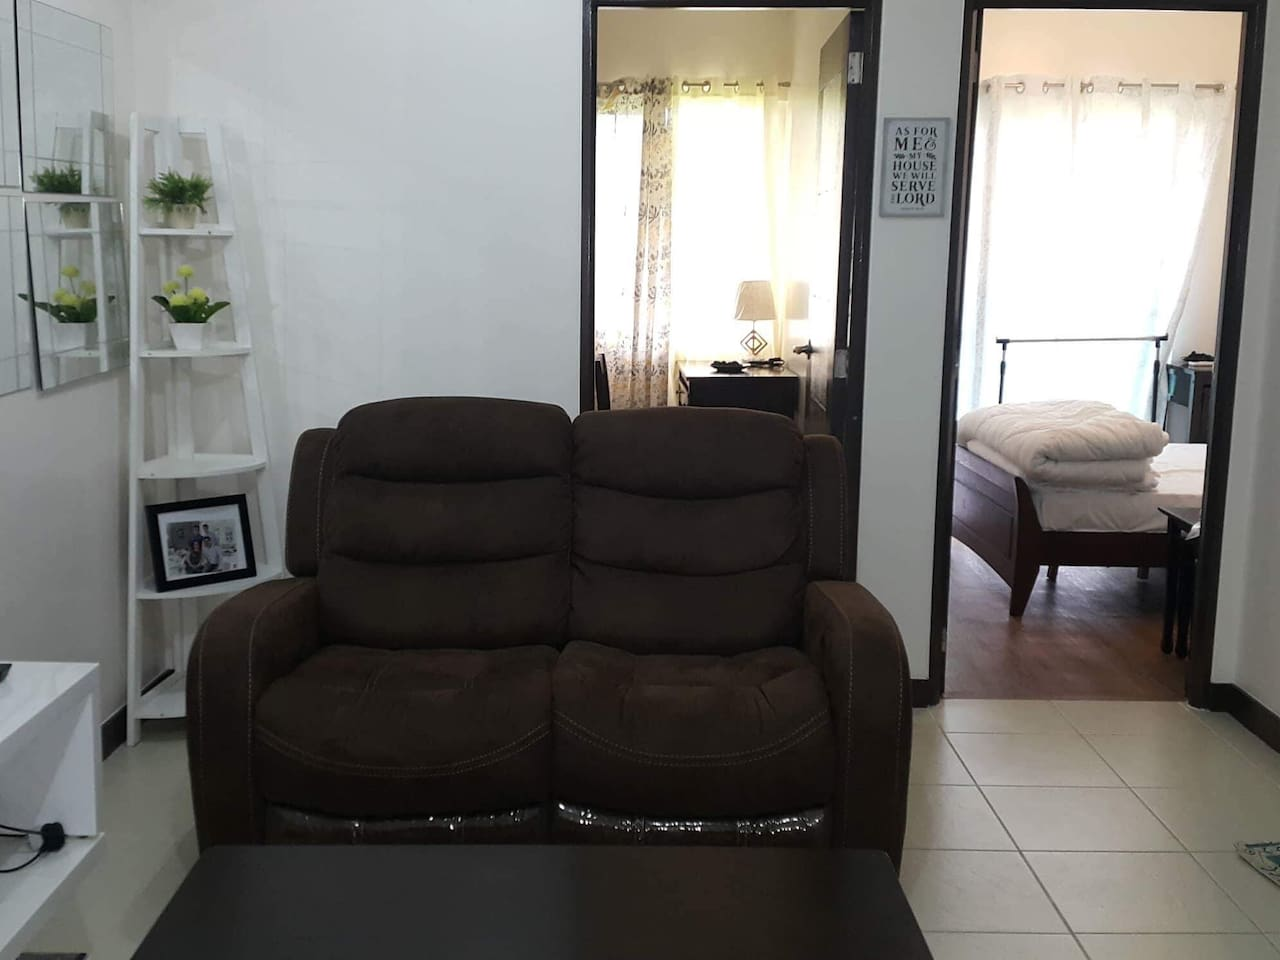 Spacious 2 bedroom resort type condo unit